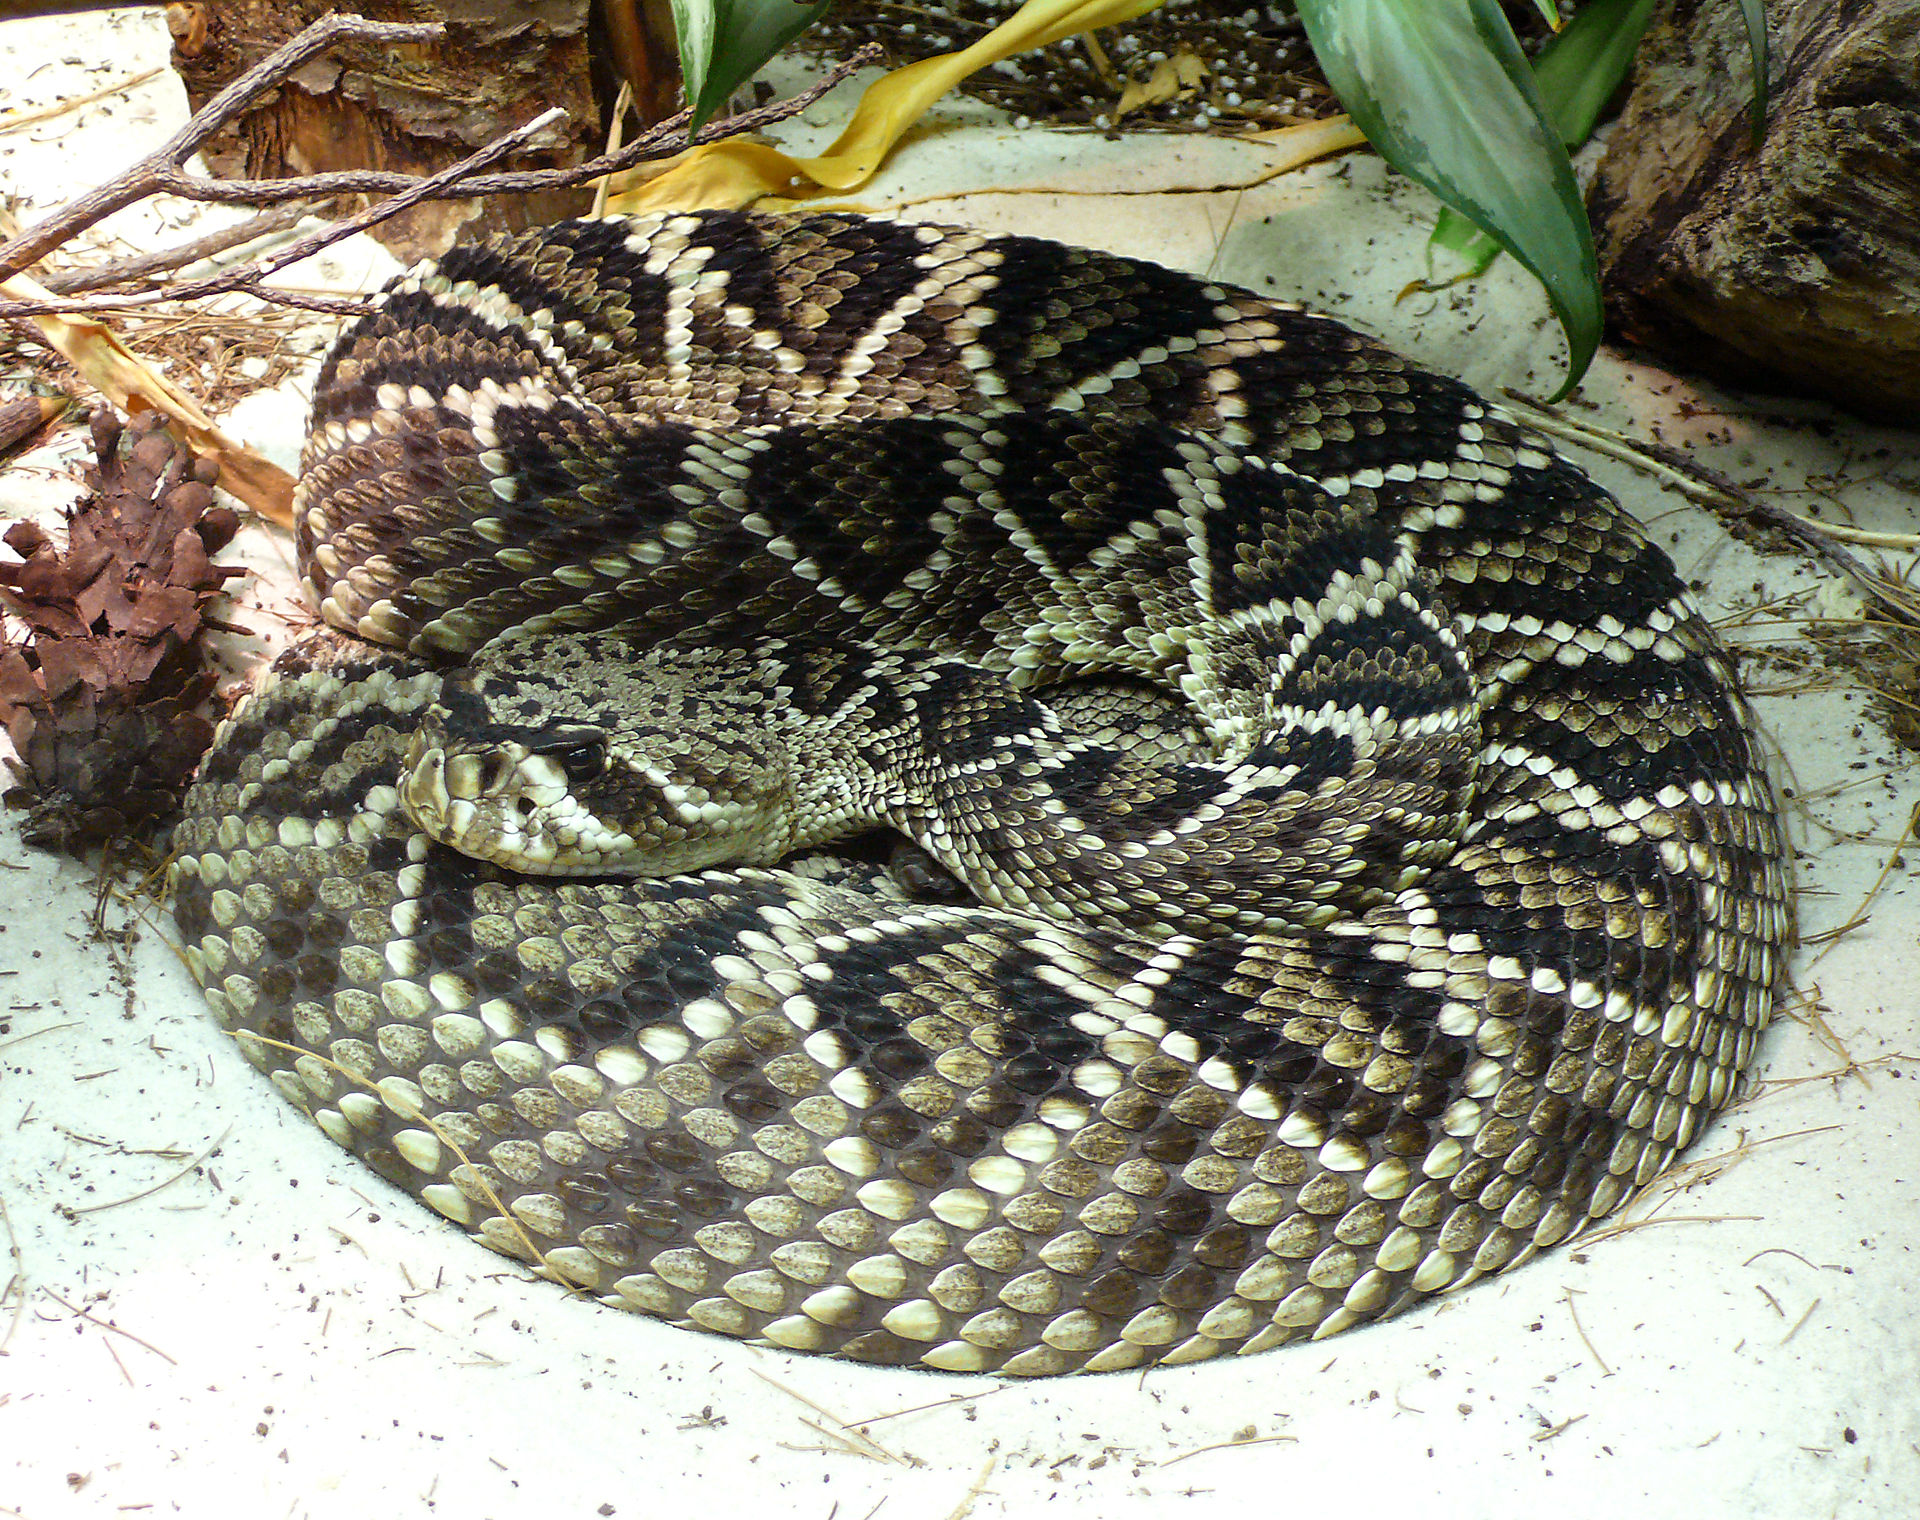 Eastern diamondback rattlesnake - Simple English Wikipedia ...